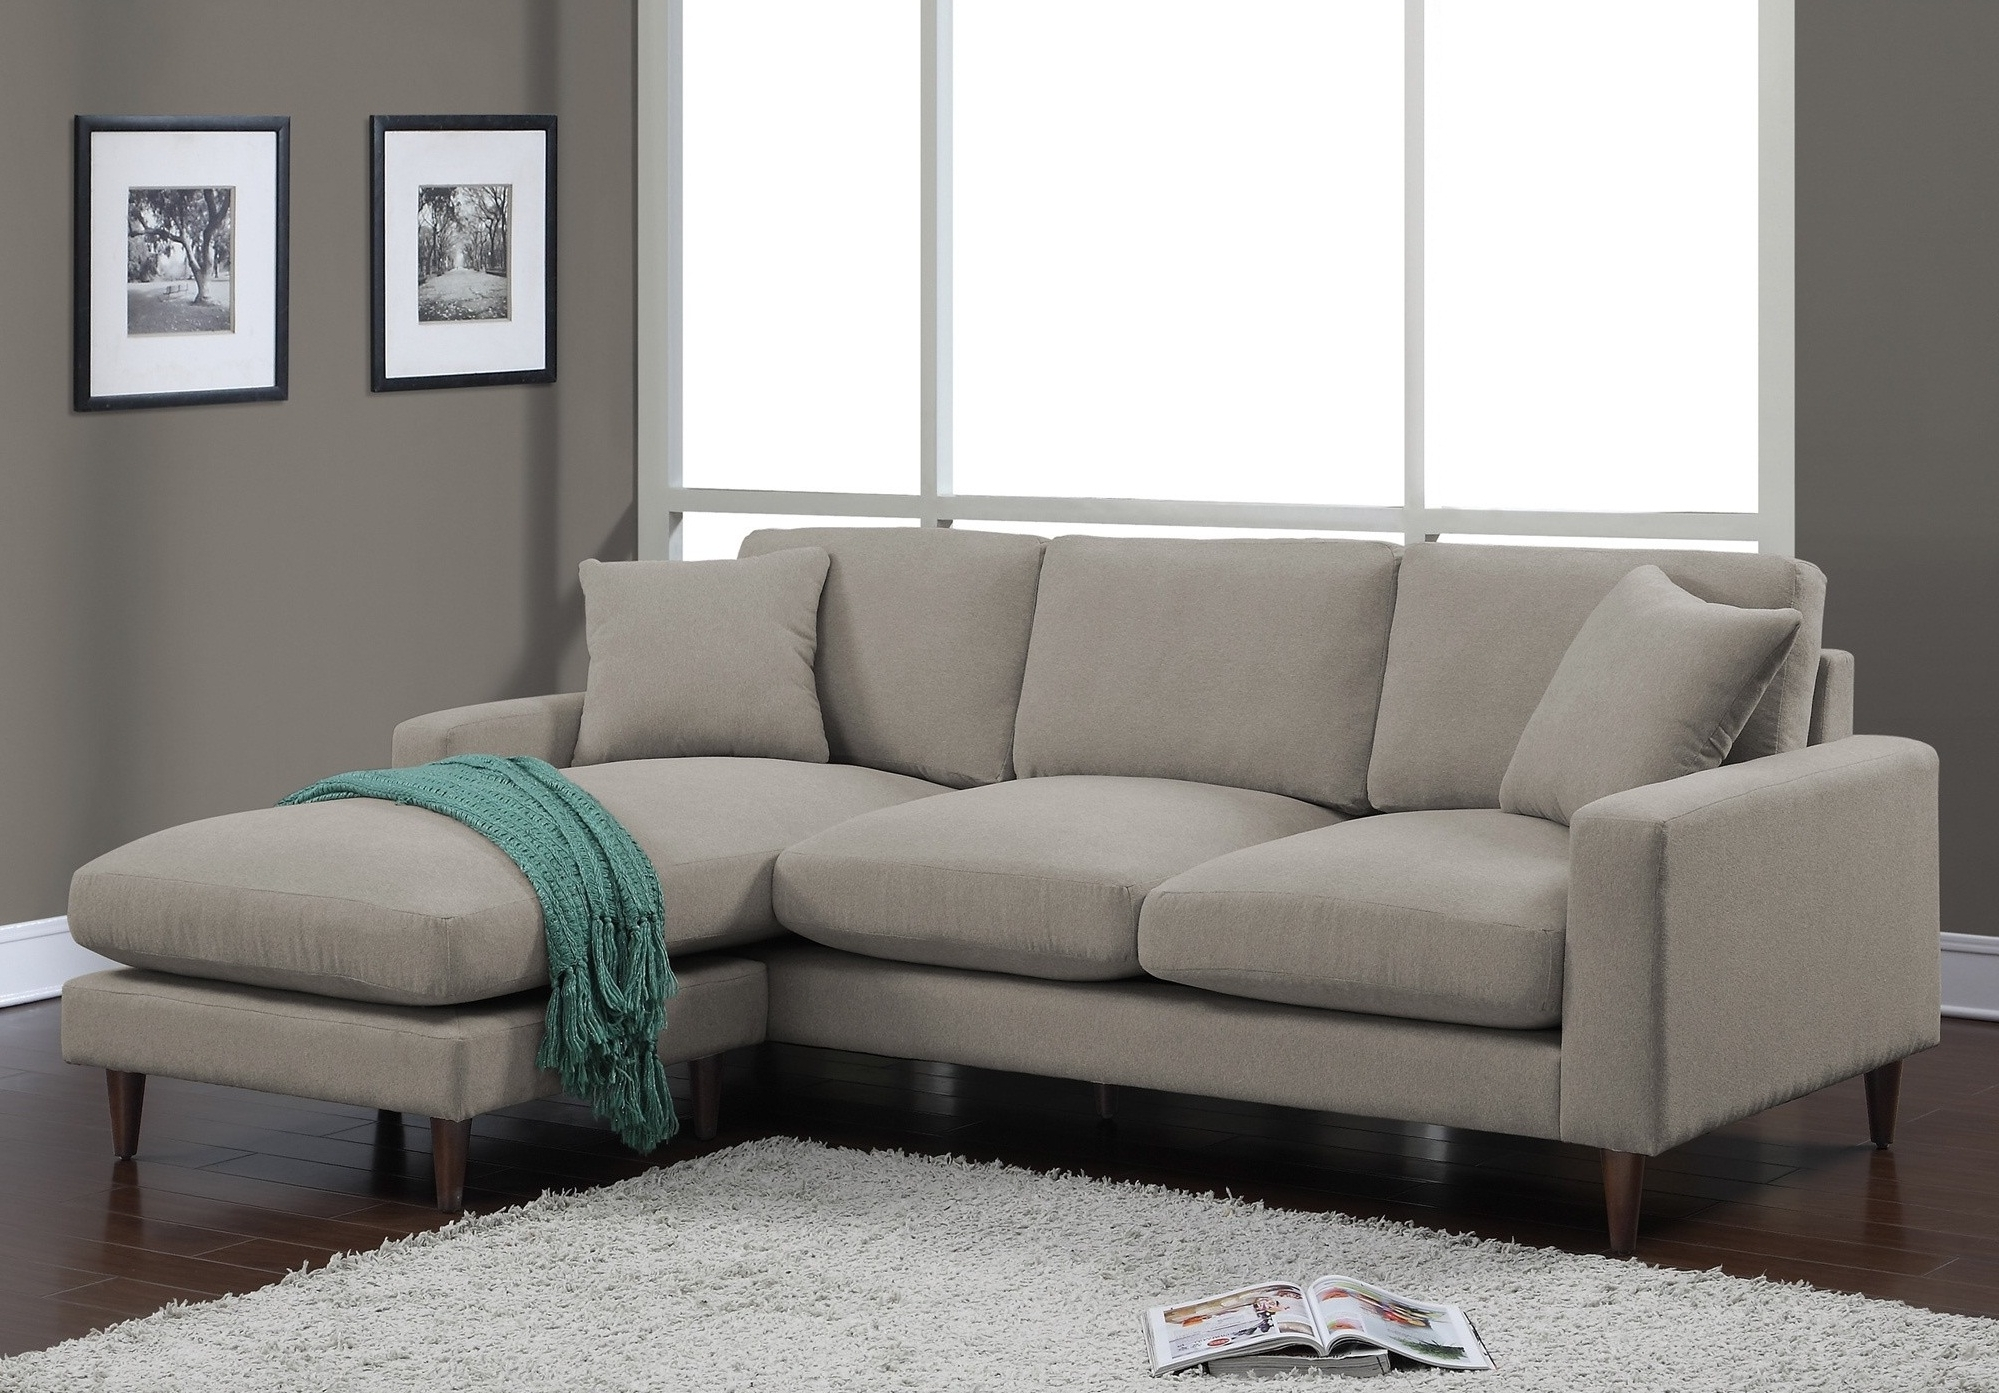 Lovable Sleeper Sofa With Chaise Lounge Alluring Living Room With Regard To Well Liked Target Sectional Sofas (View 7 of 15)